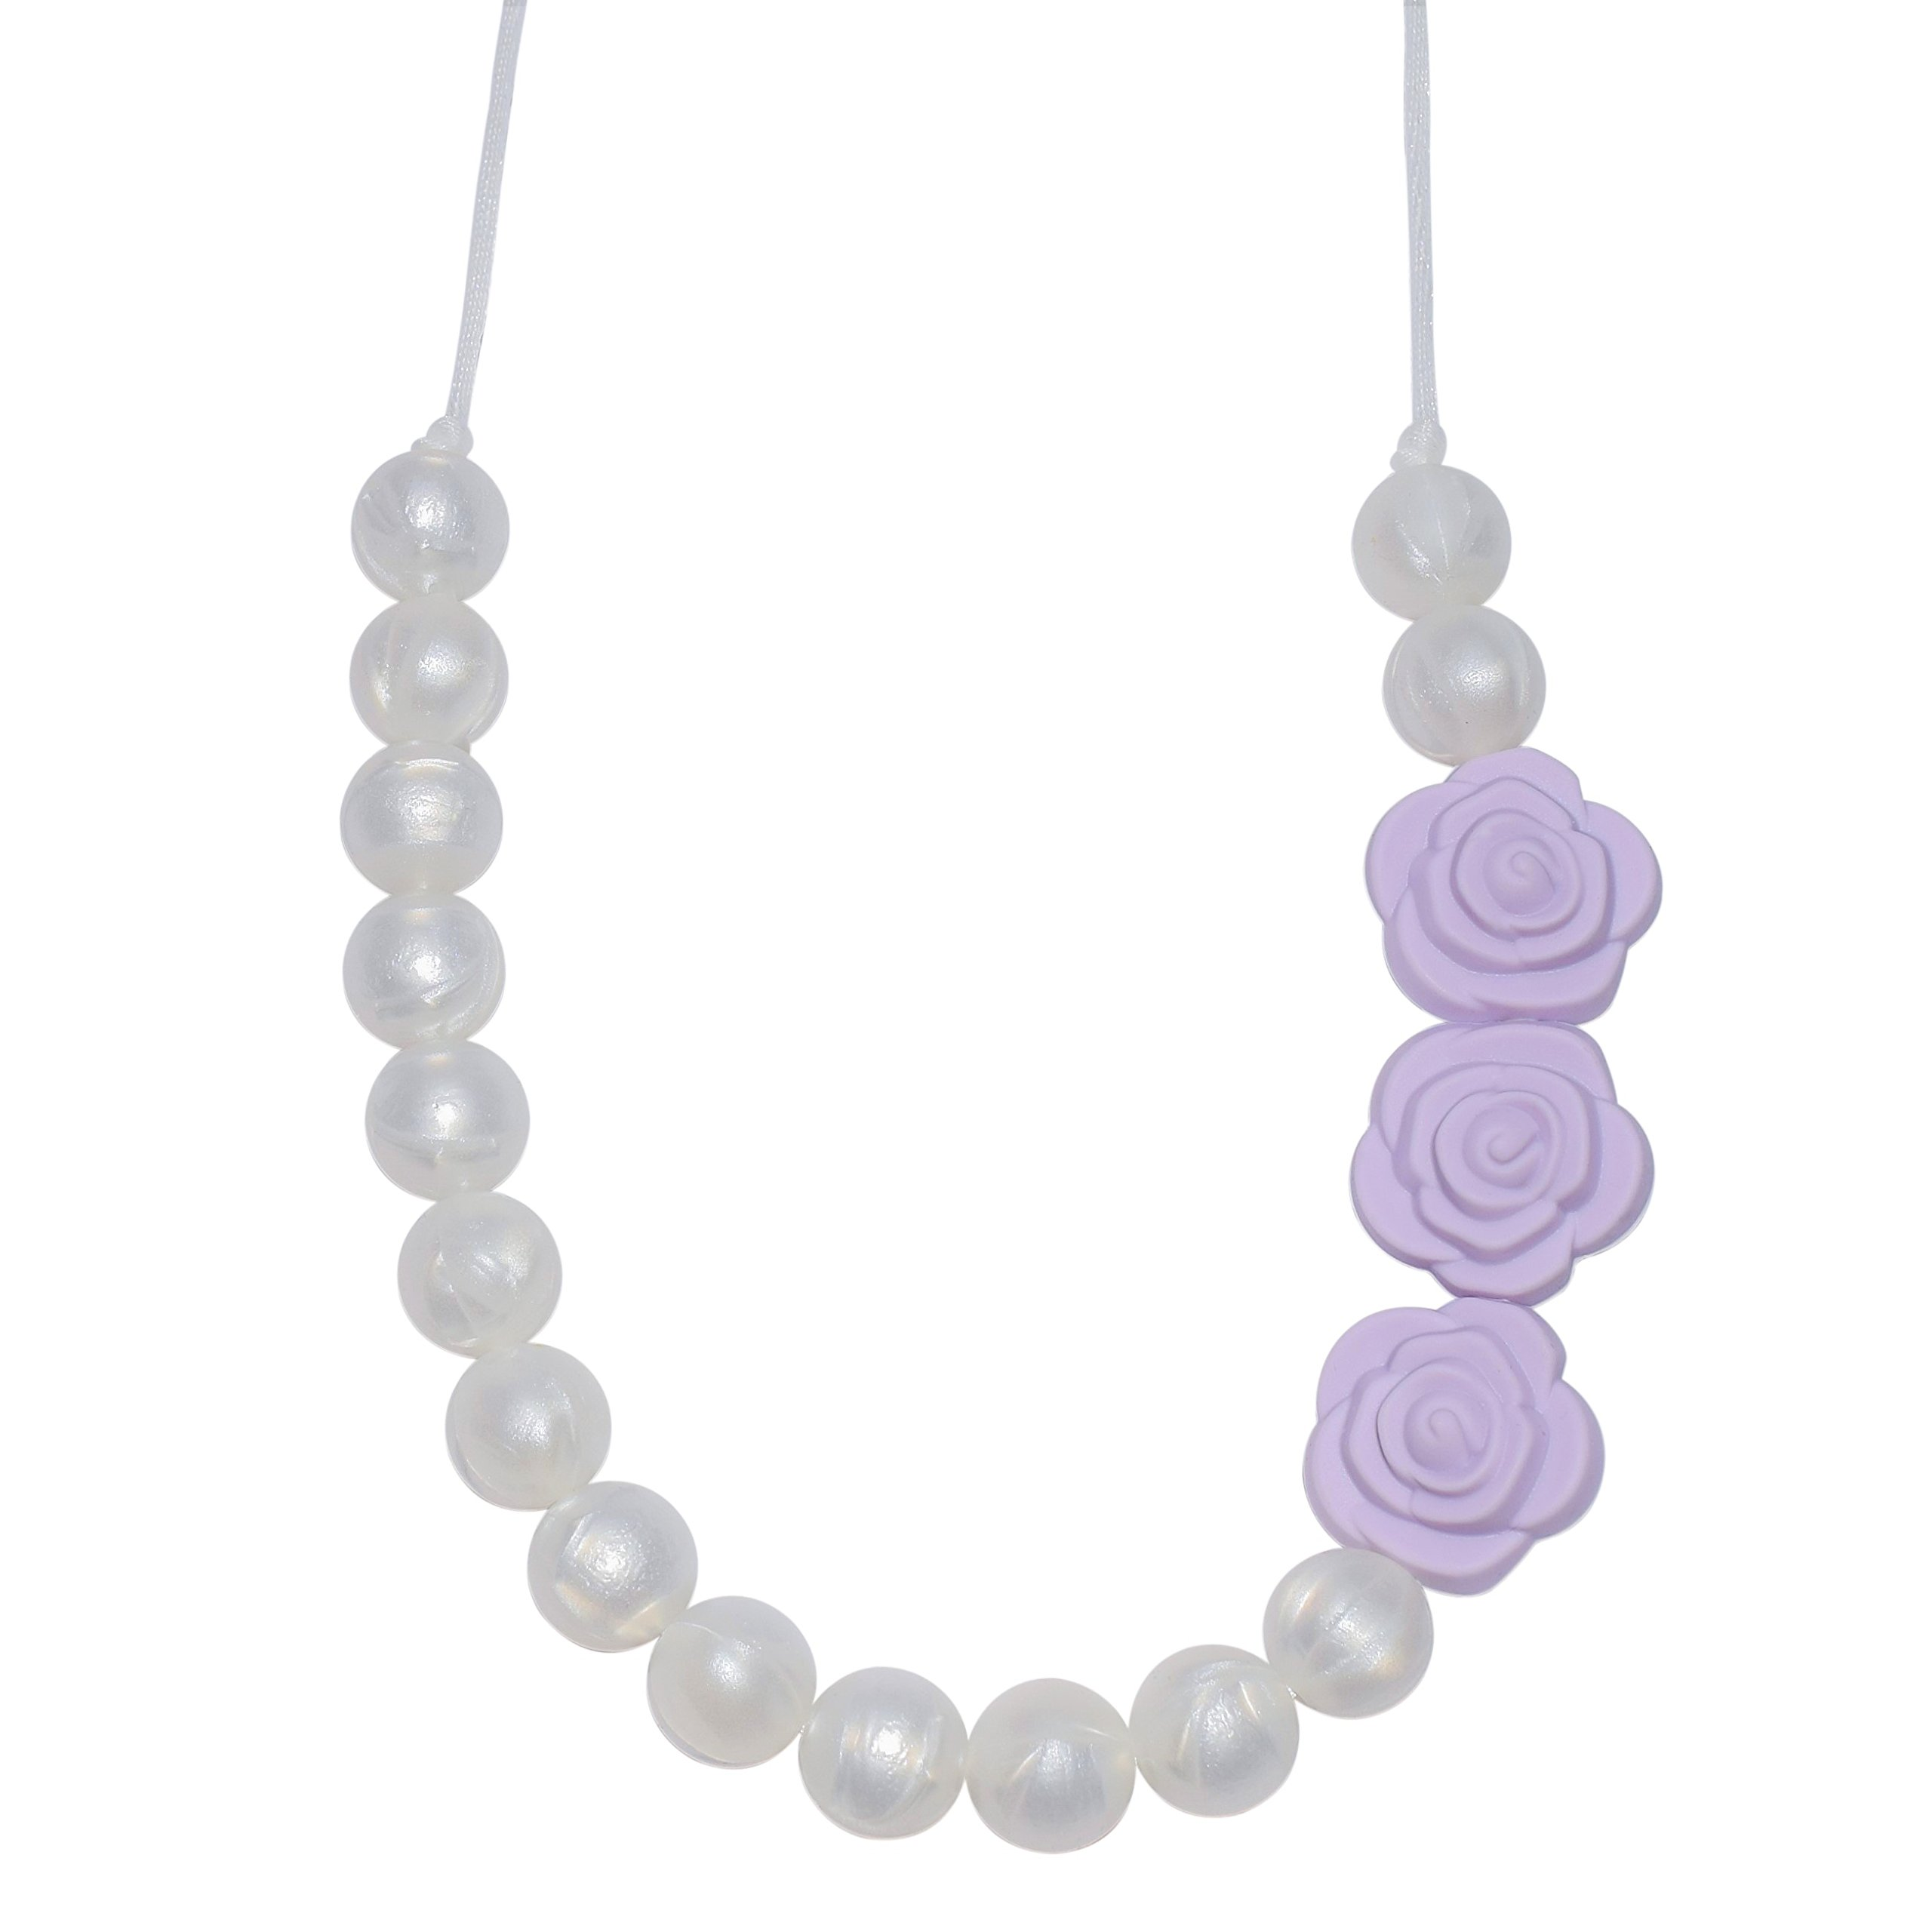 Sensory Chew Necklace for Girls' - Pearl Roses Chewelry